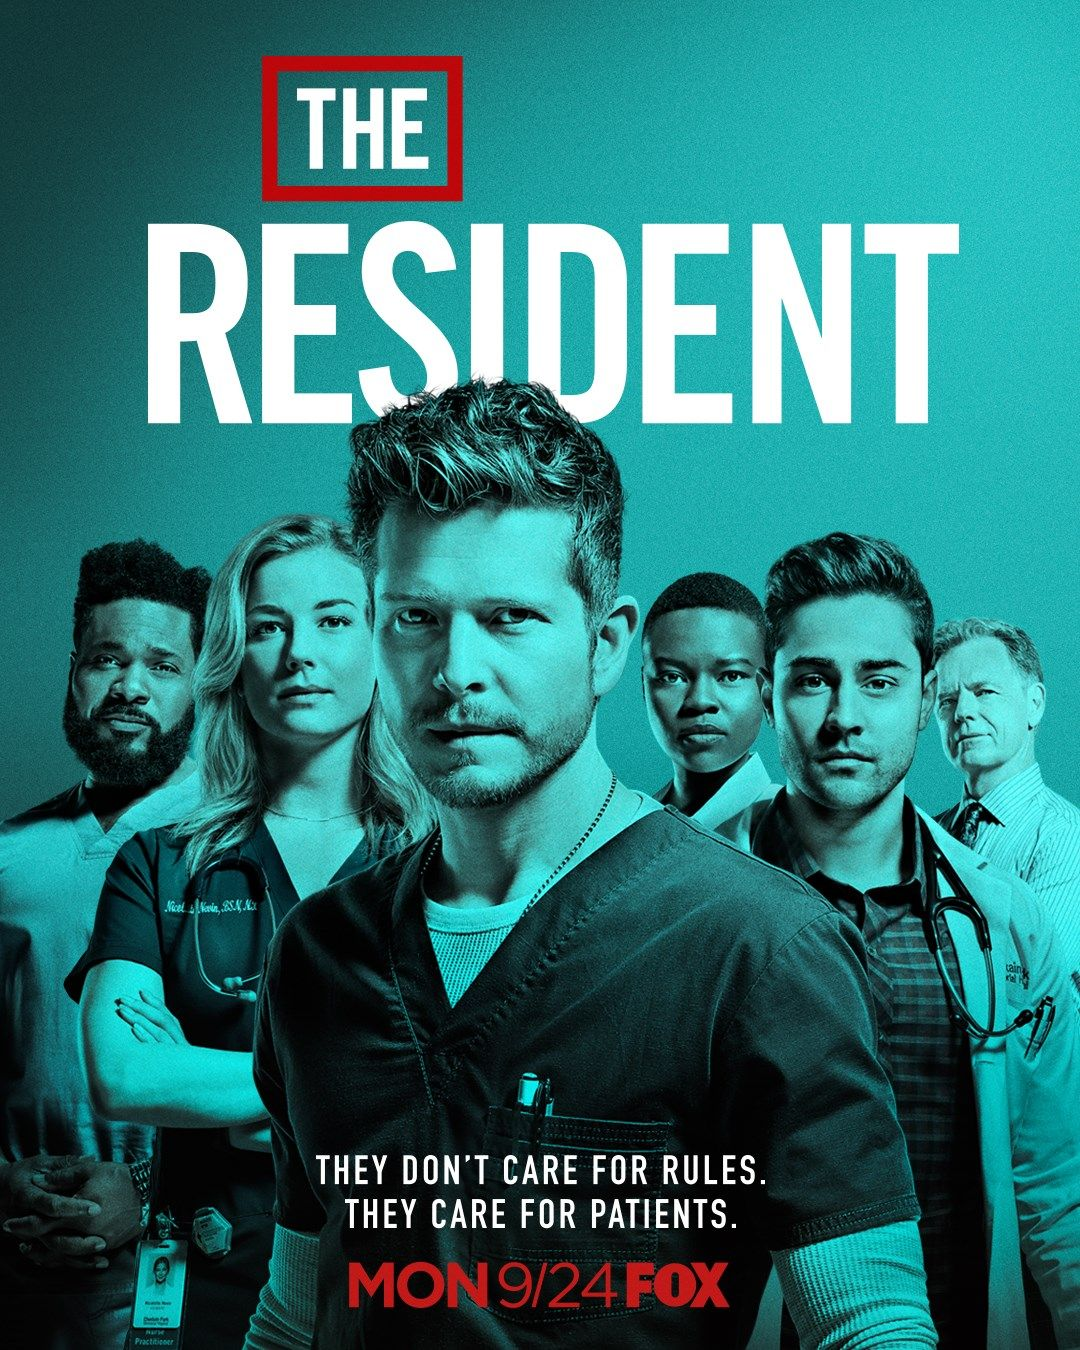 The Resident 2017 The Resident Tv Show Tv Series To Watch